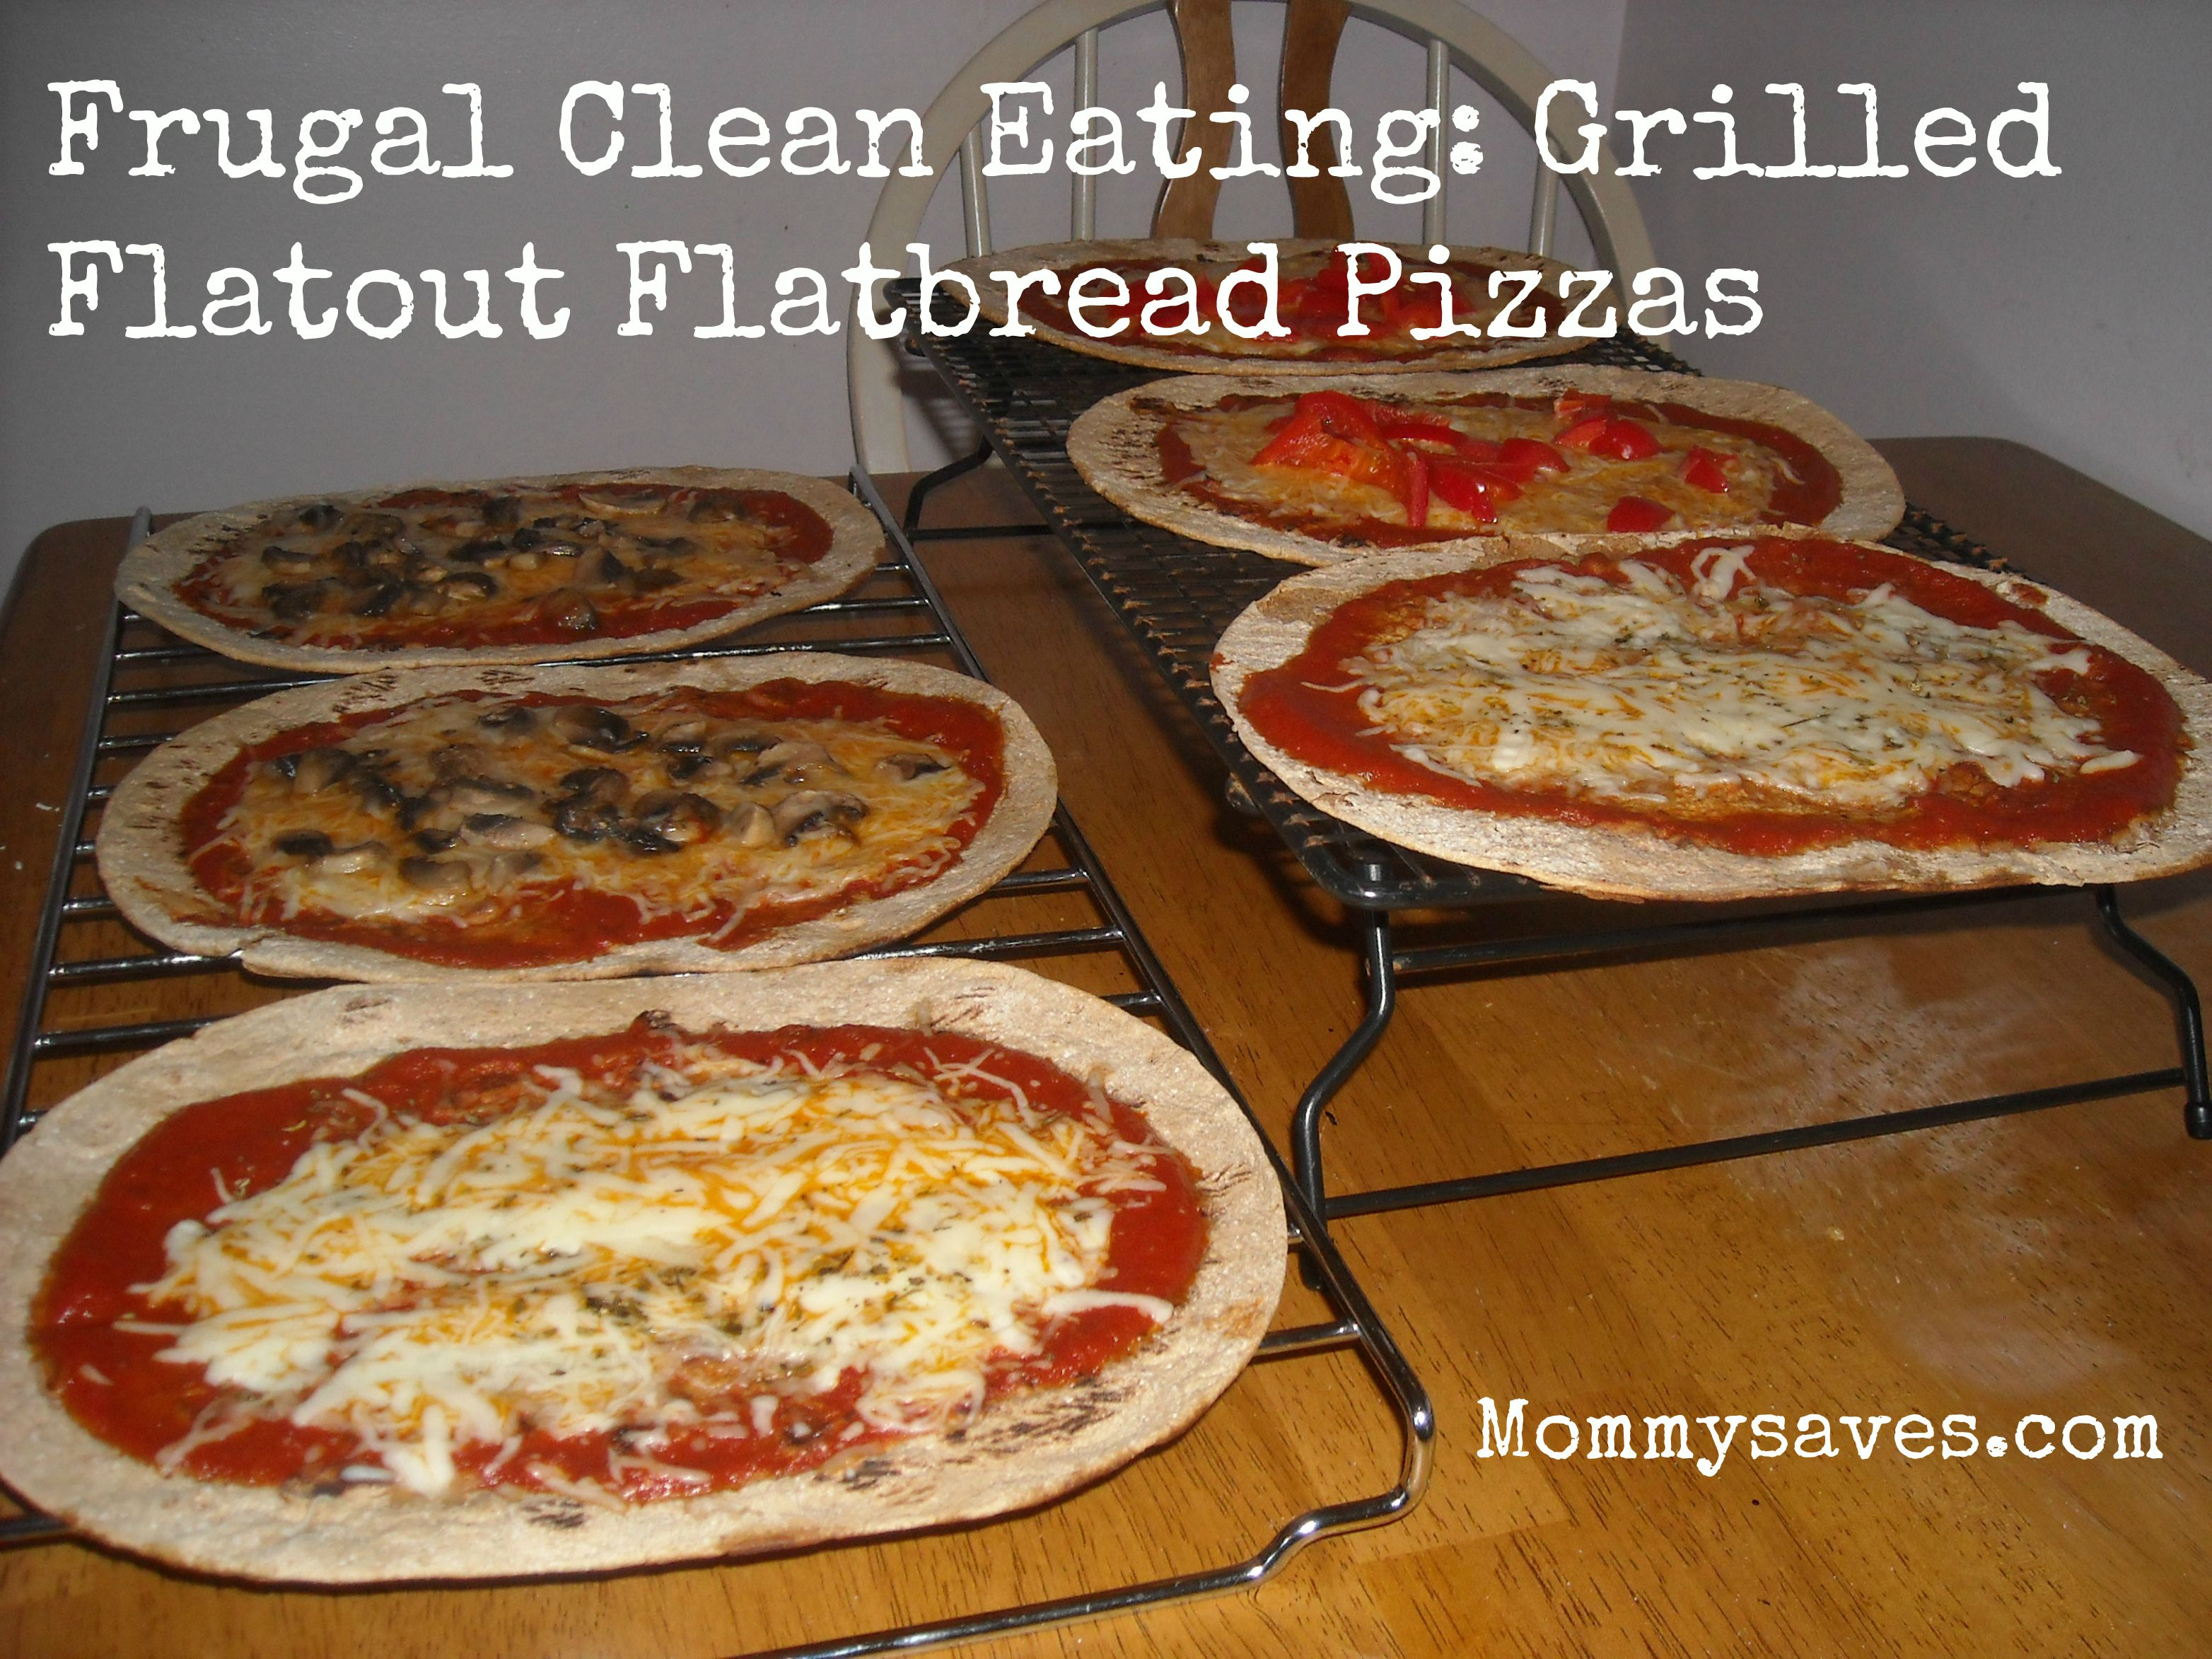 Clean Eating Flatbread Pizzas